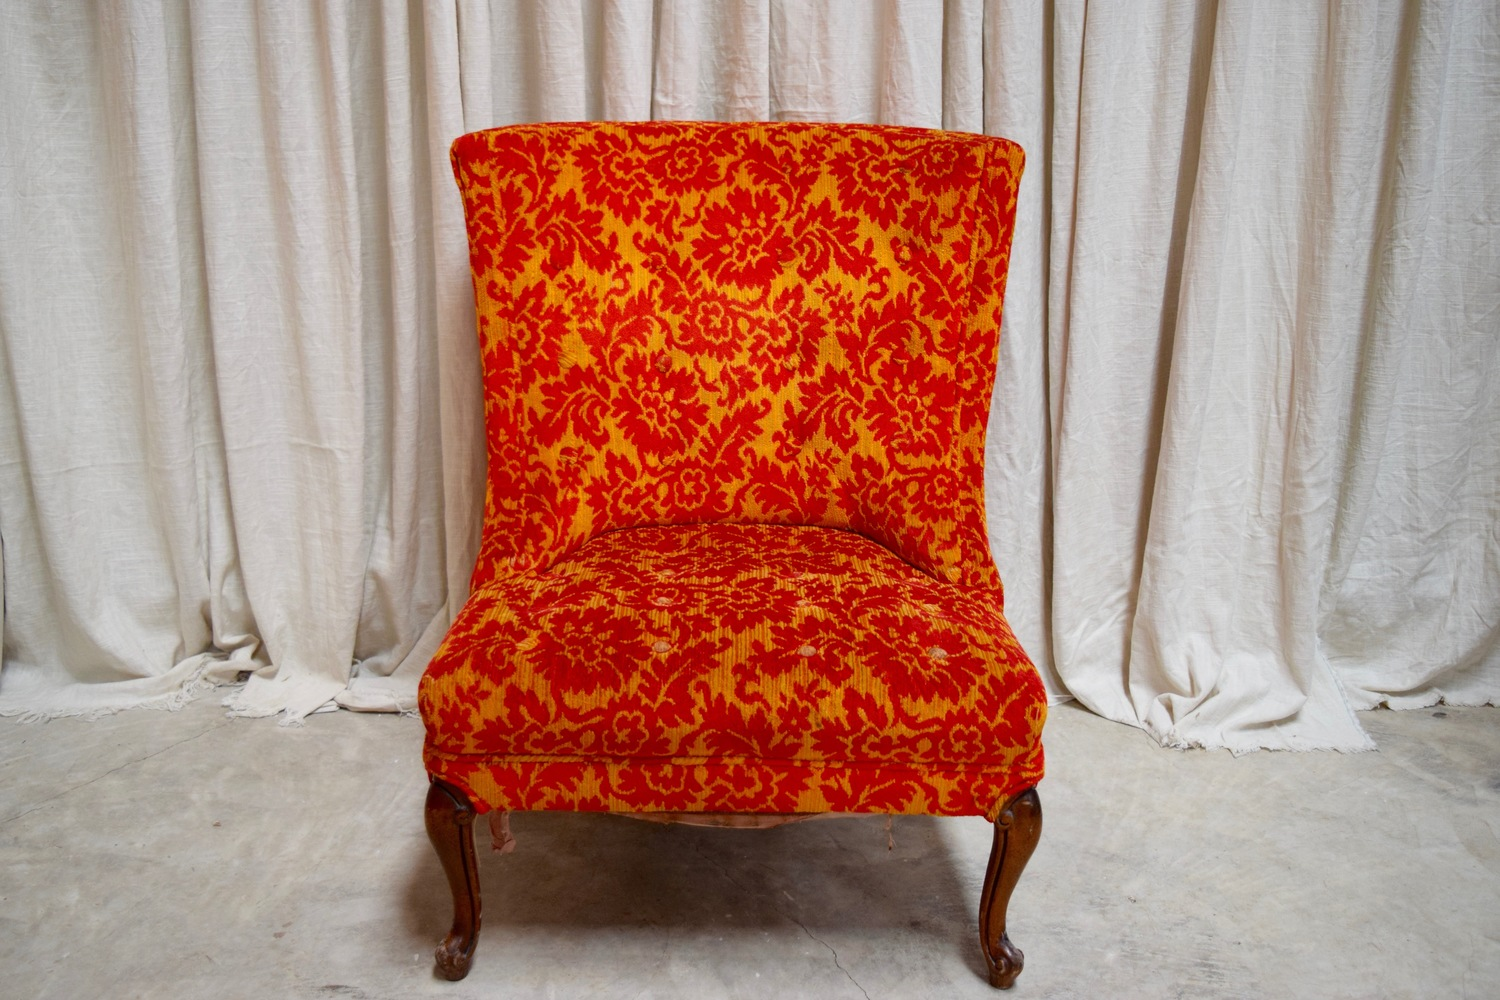 Lovely Red And Orange Floral Chair